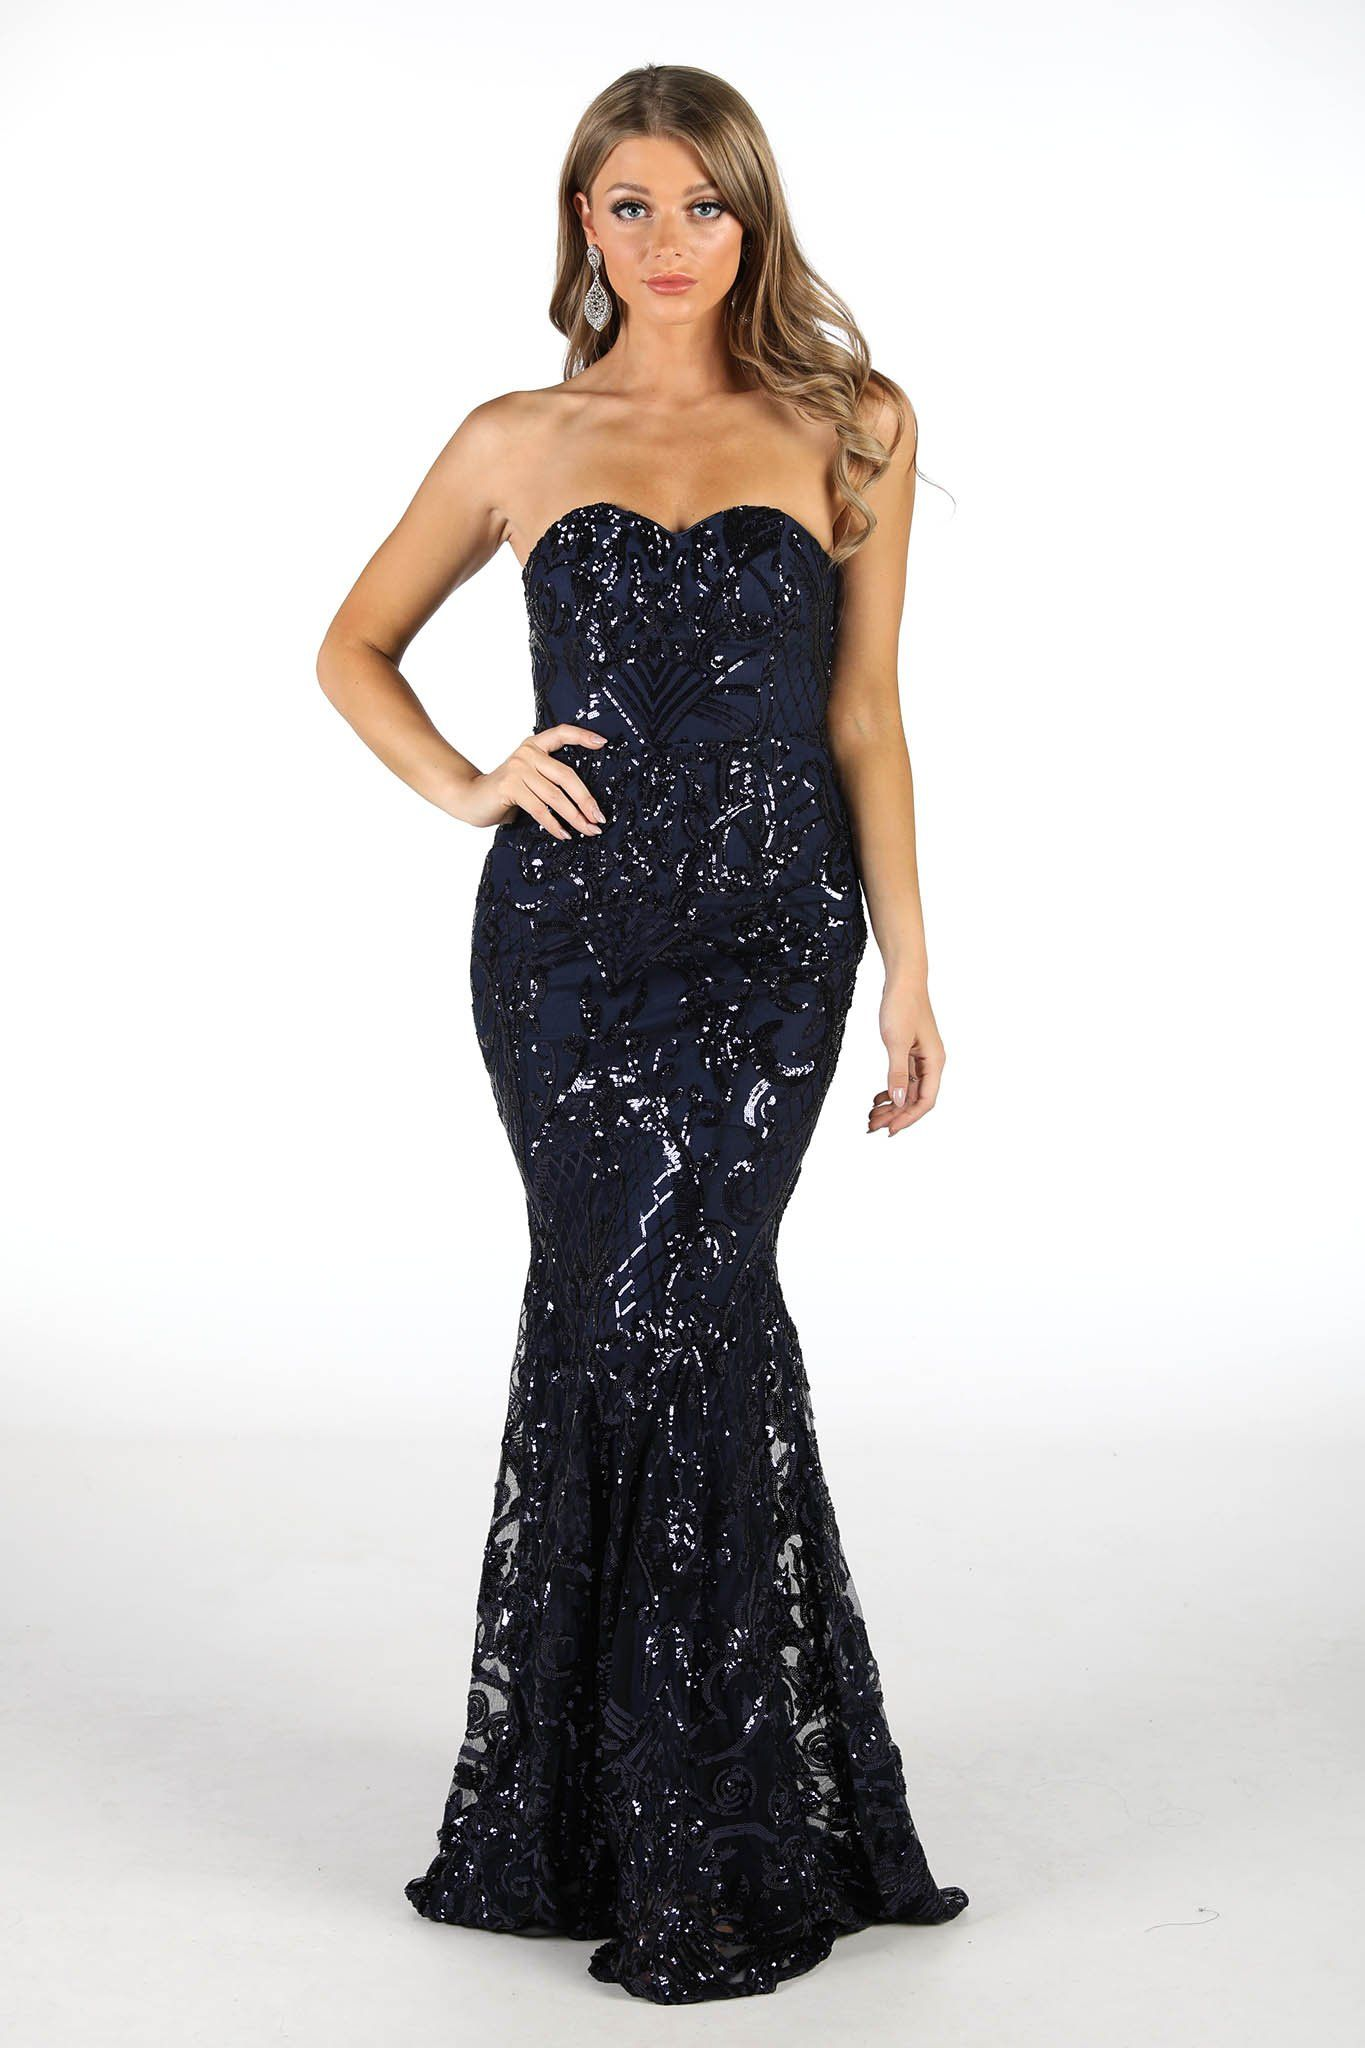 Embroidered Pattern Sequin Floor Length Dress in Navy Colour with Sweetheart Neckline and Form-Fitting Gently Flared Mermaid Silhouette